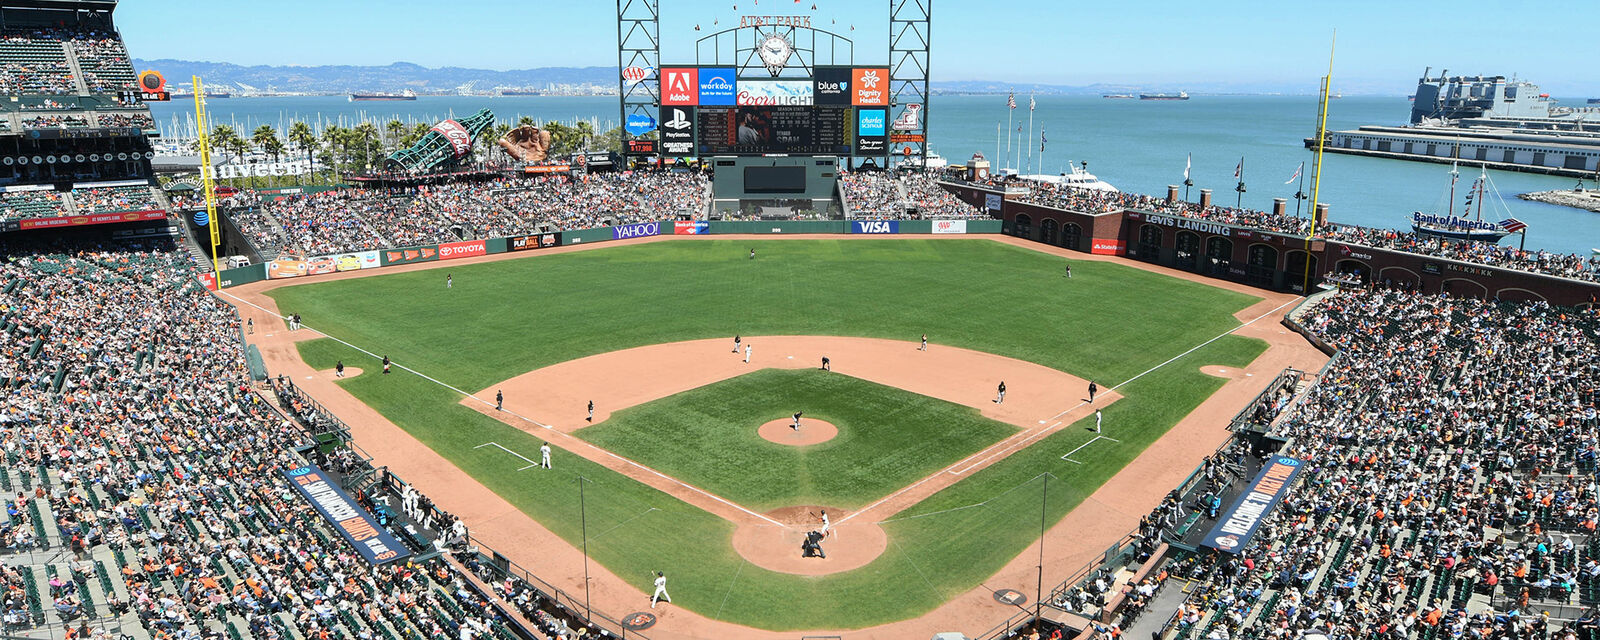 San Diego Padres at San Francisco Giants